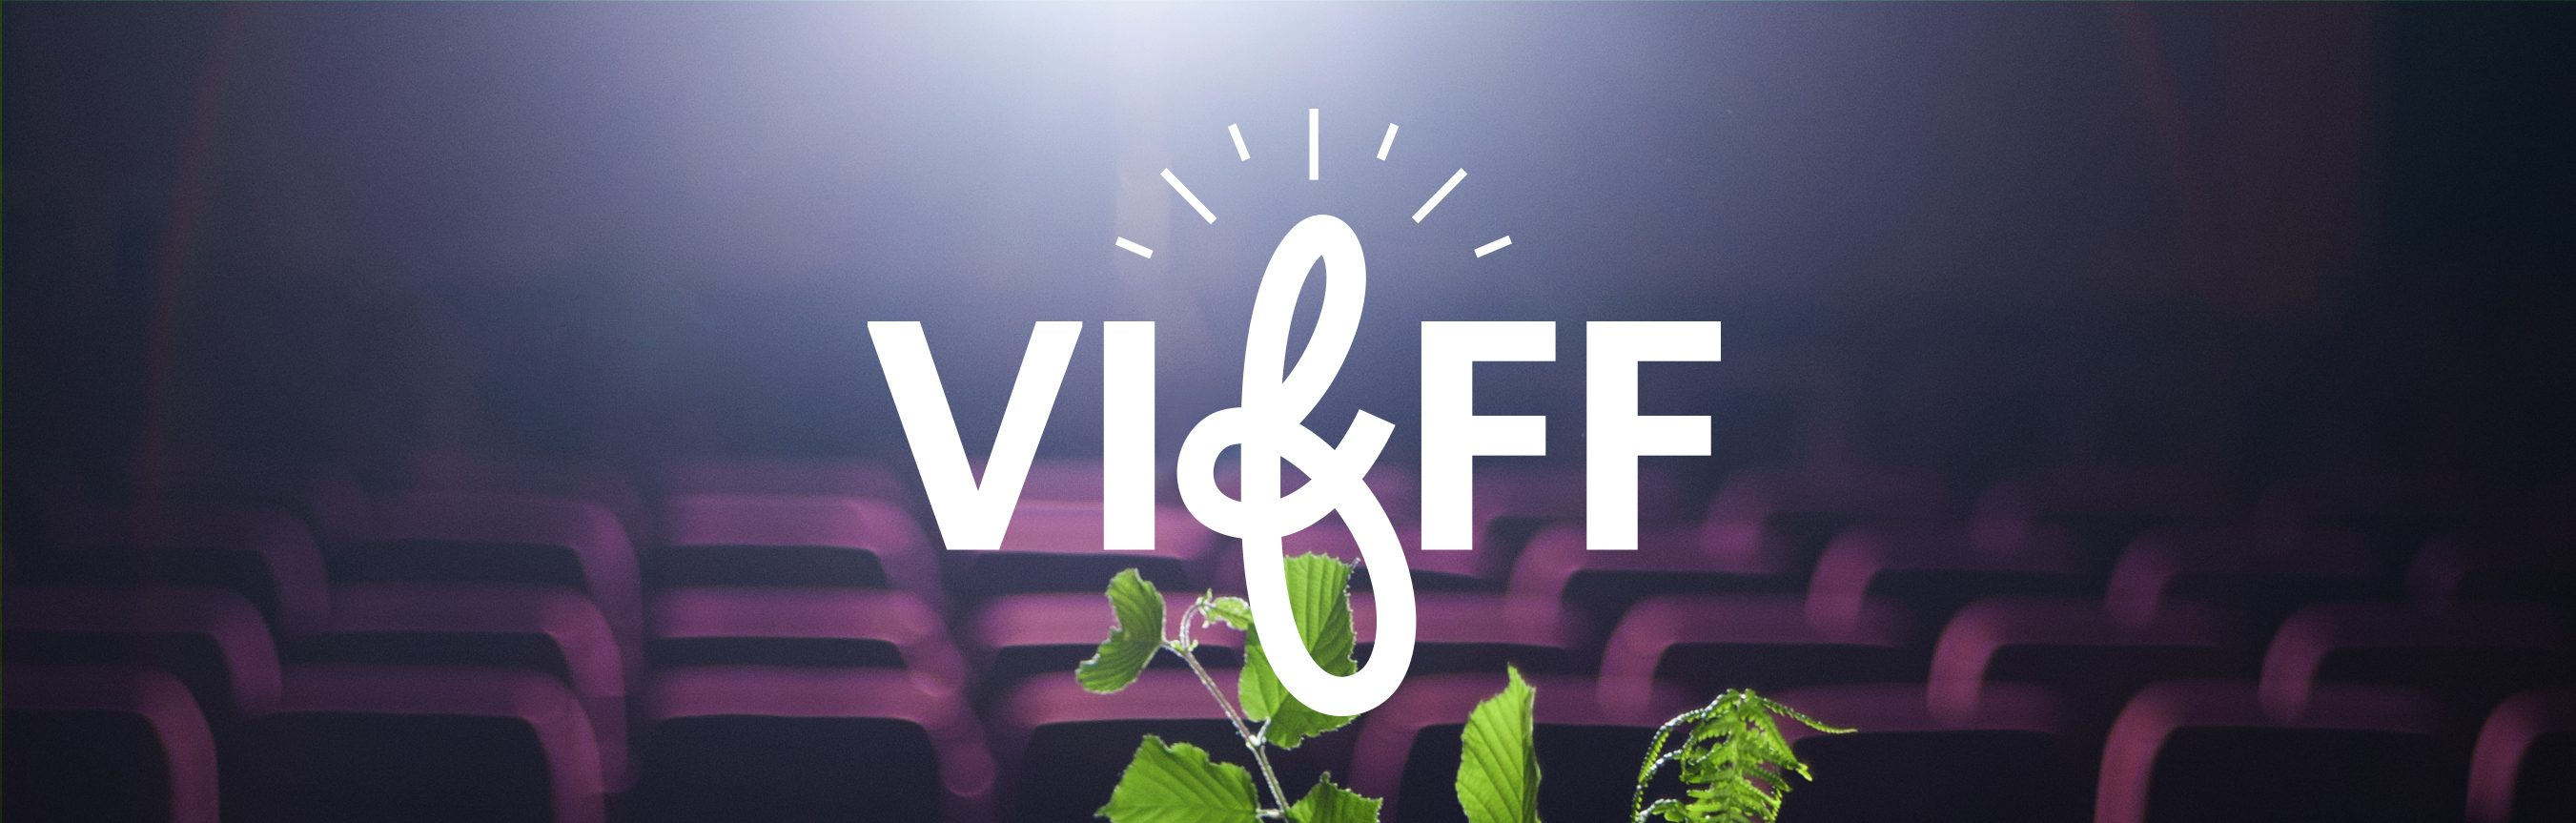 VIFFF- Vevey International Funny Film Festival